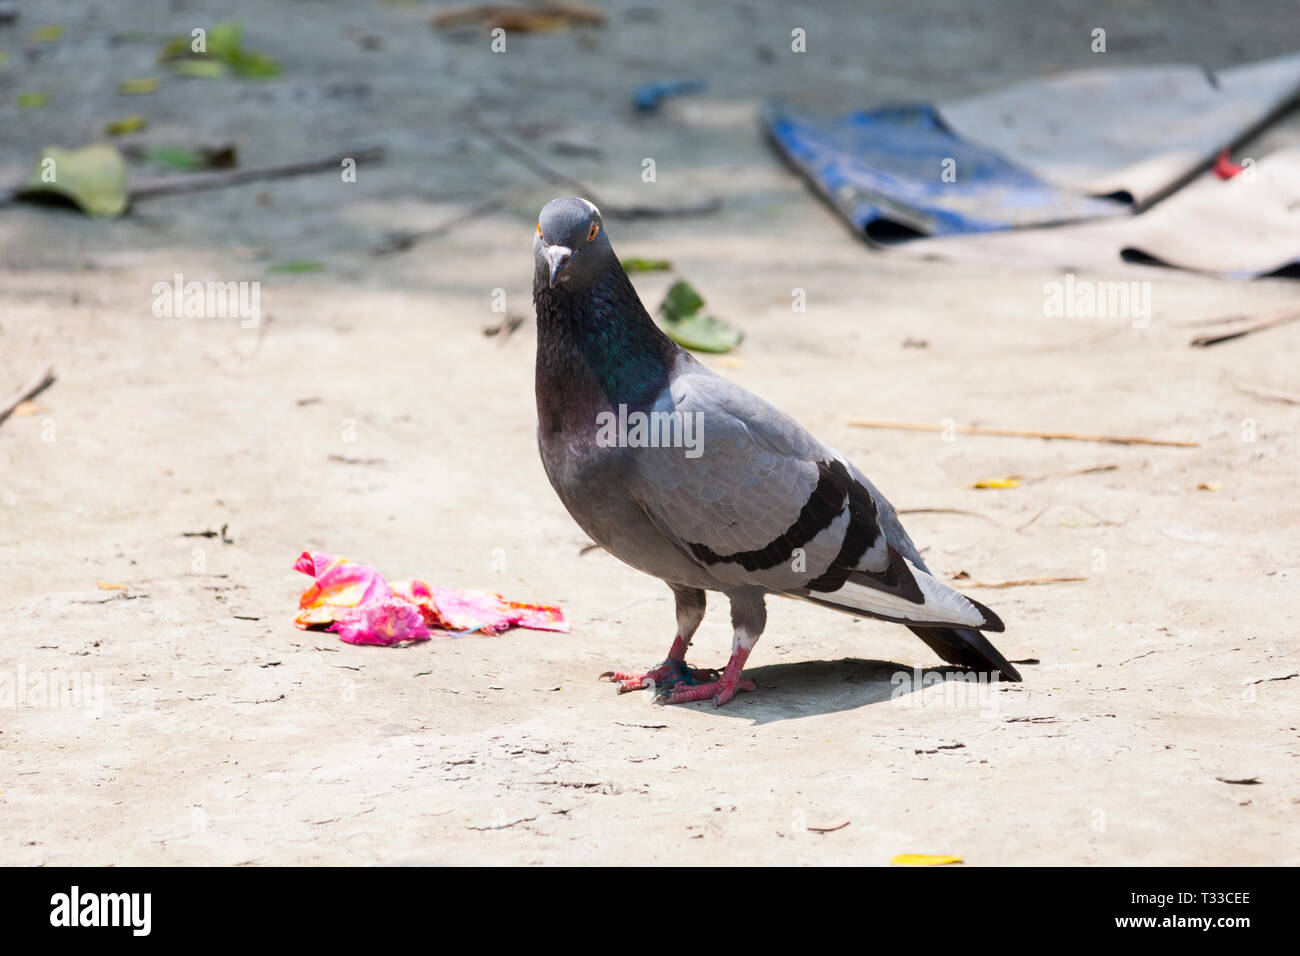 Pets pigeon on the ground - Stock Image